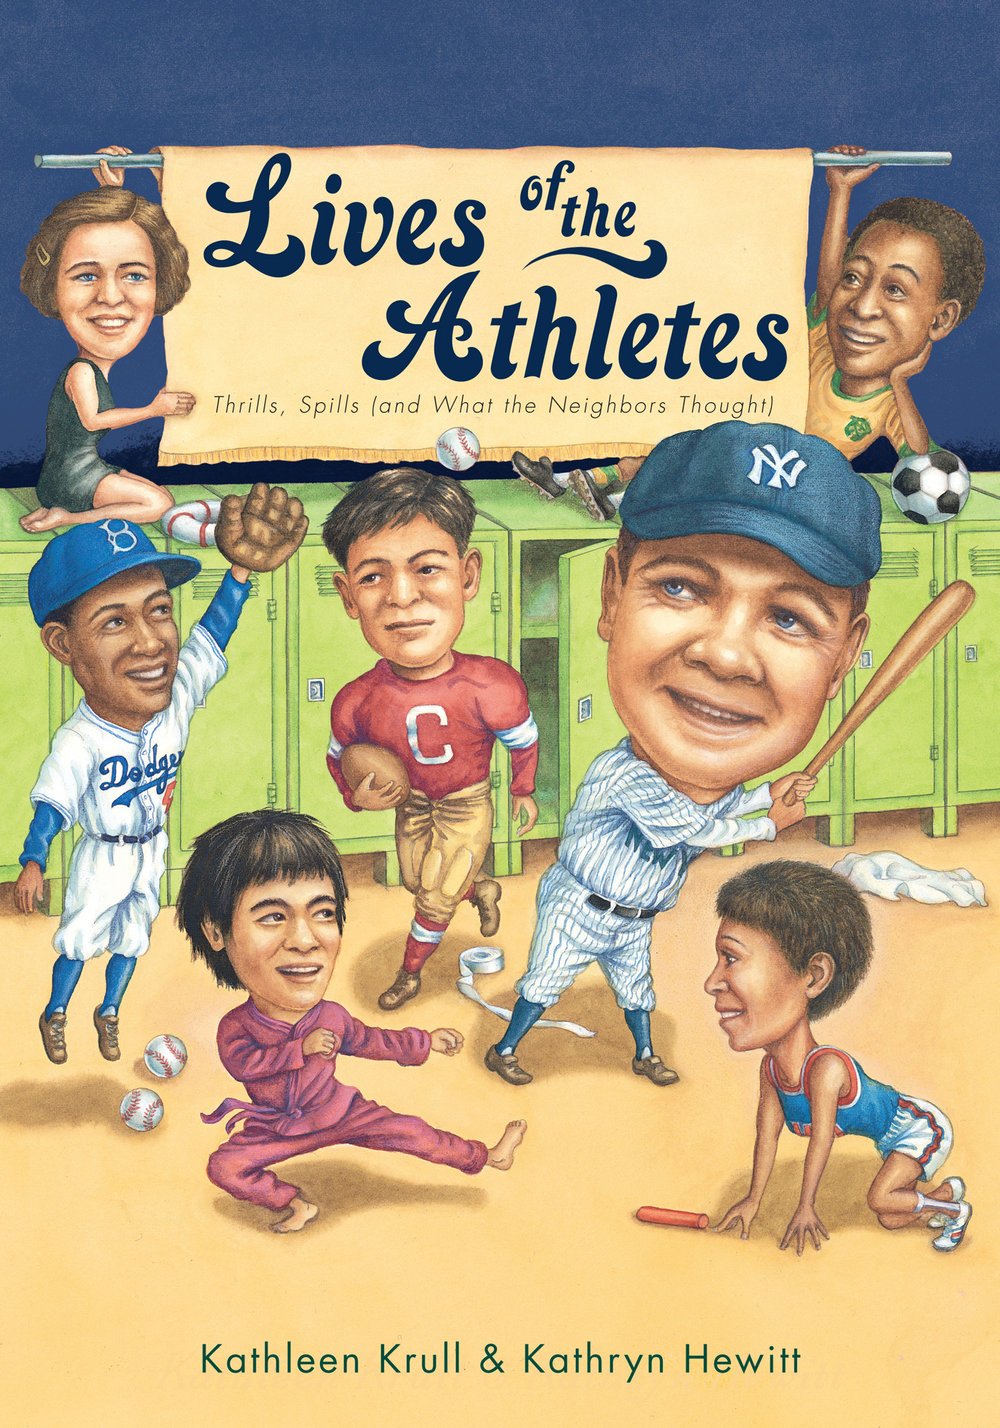 Lives of the Athletes: Thrills, Spills (and What the Neighbors Thought) - Kathleen Krull, illustrated by Kathryn Hewitt       Houghton Mifflin Harcourt 2013What is your favorite athlete's biggest fear? Strangest habit? Craziest quirk? And what did their neighbors have to say about them? Find out all you ever wanted to know about your favorite sports stars in Lives of the Athletes. Biographical information has never been this much fun to read!